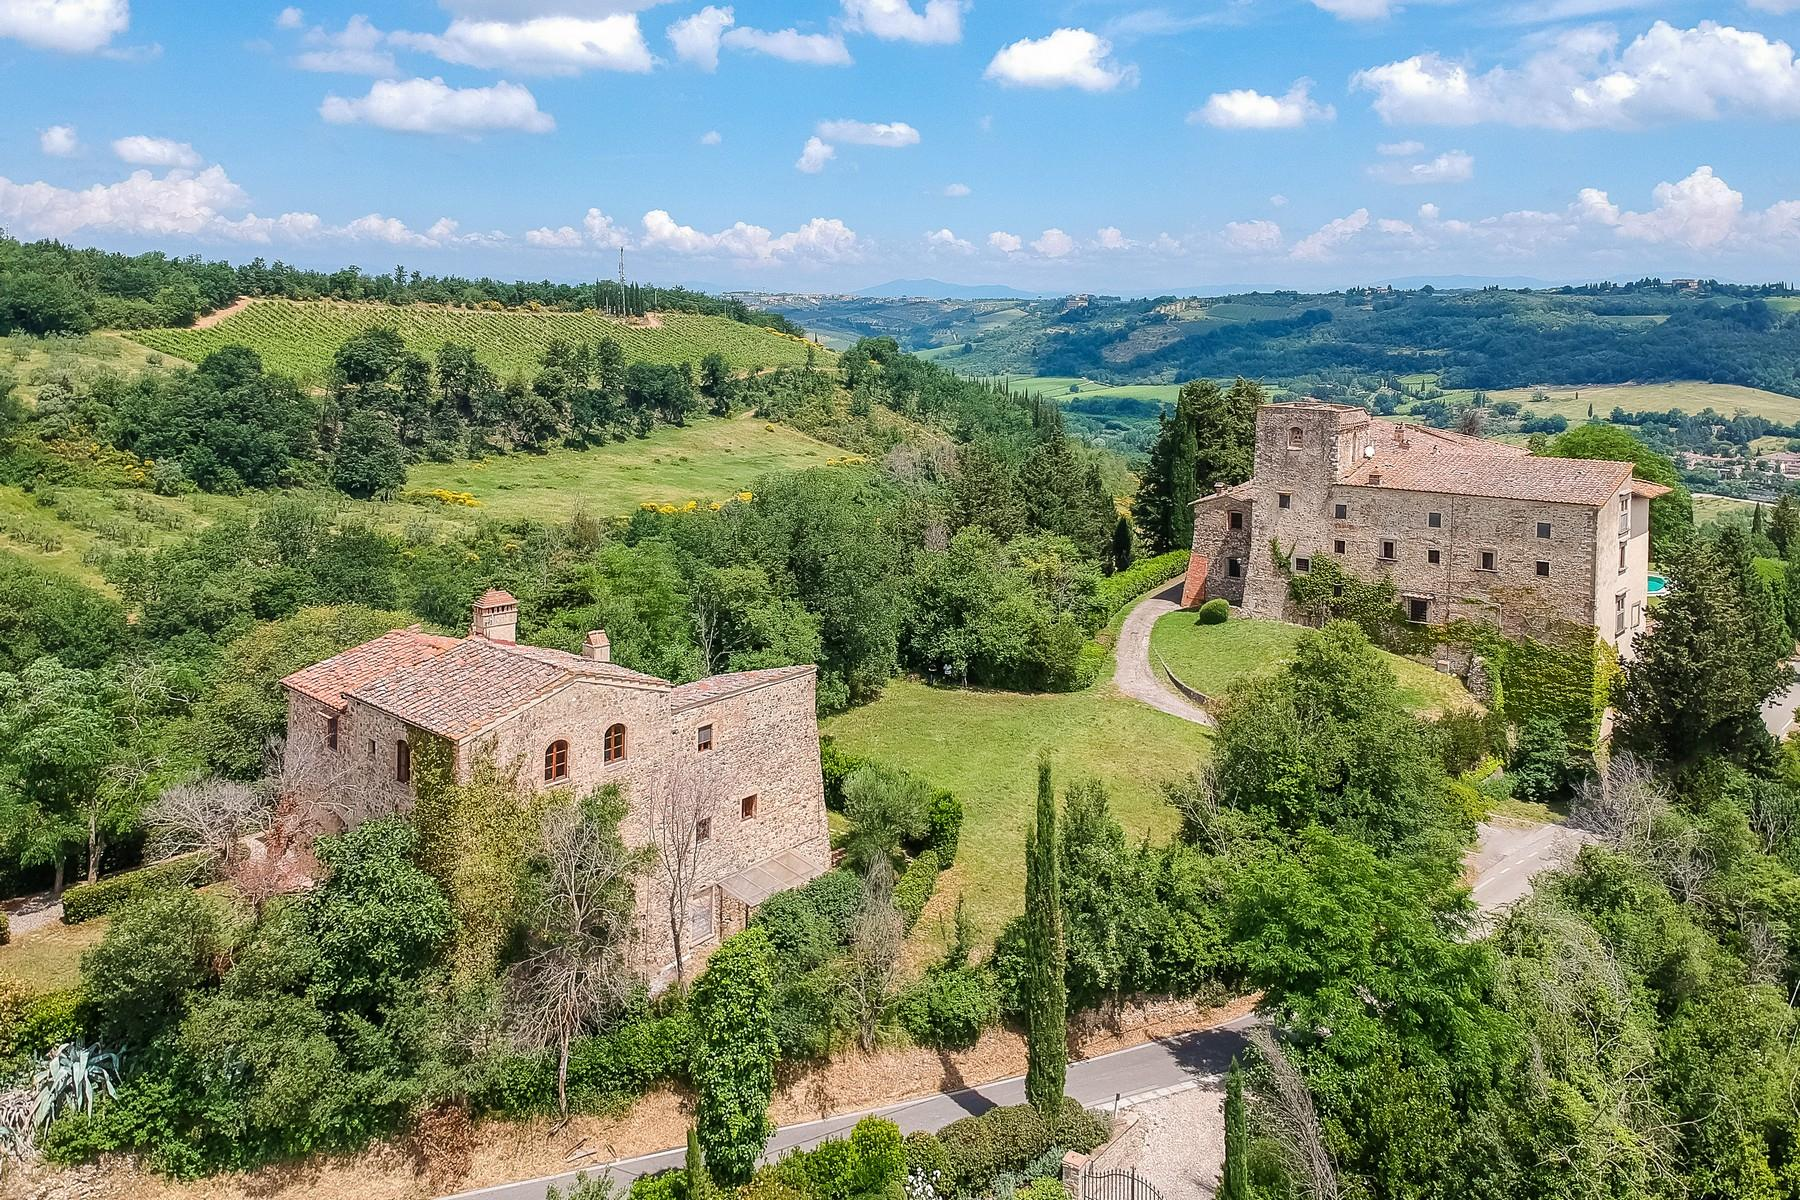 Renaissance castle in the Florentine Chianti hills - 2